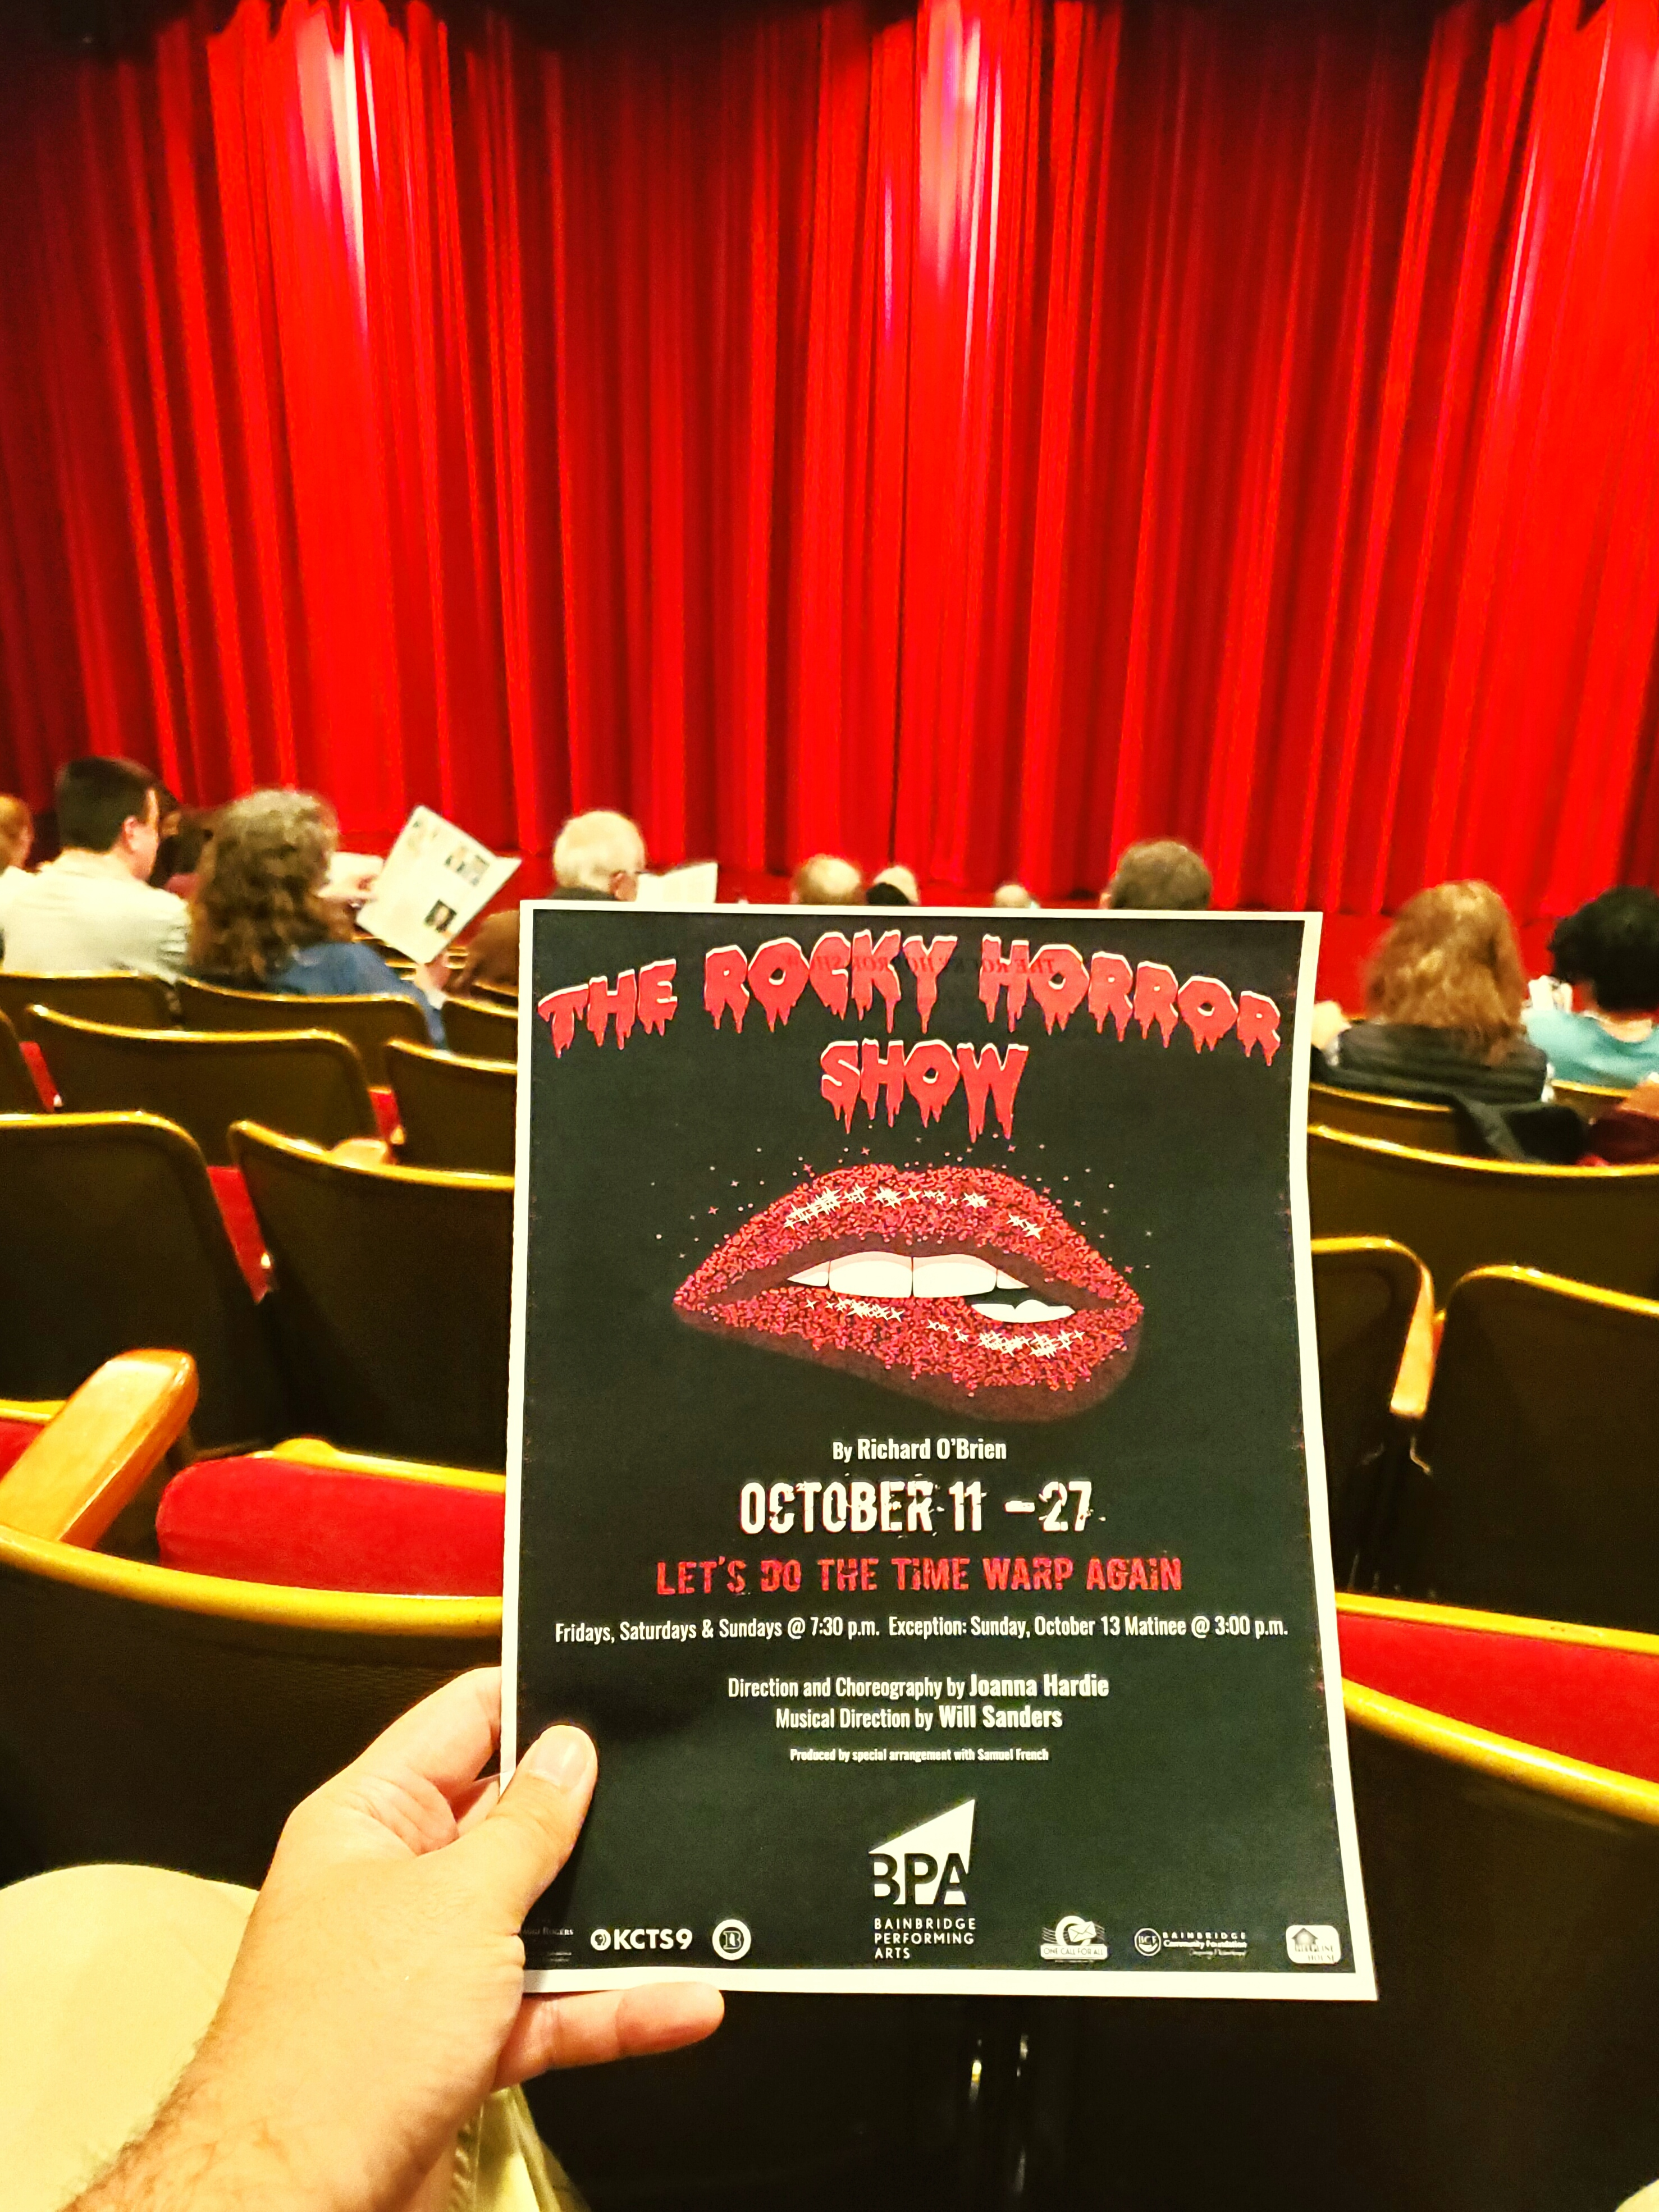 The Rocky Horror Picture Show stage #musical at Bainbridge Performing Arts. Packed #rowdy audience in little ole Bainbridge Island, Washington.